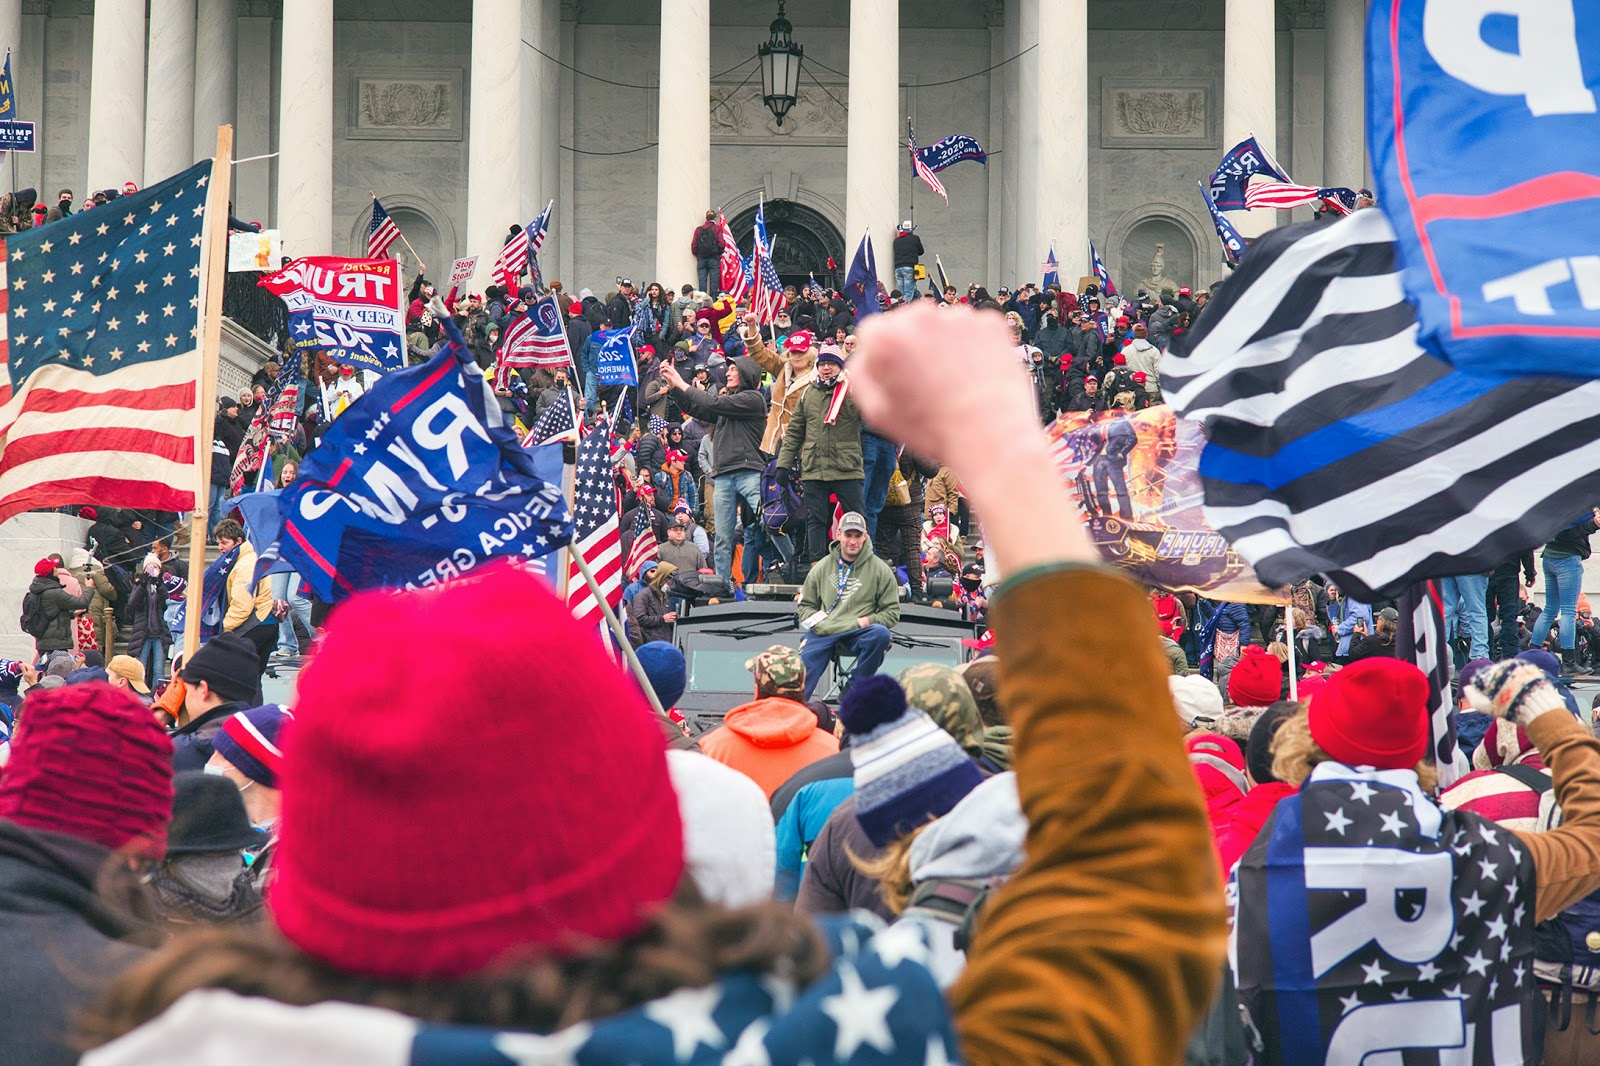 Storming the Capitol, January 6